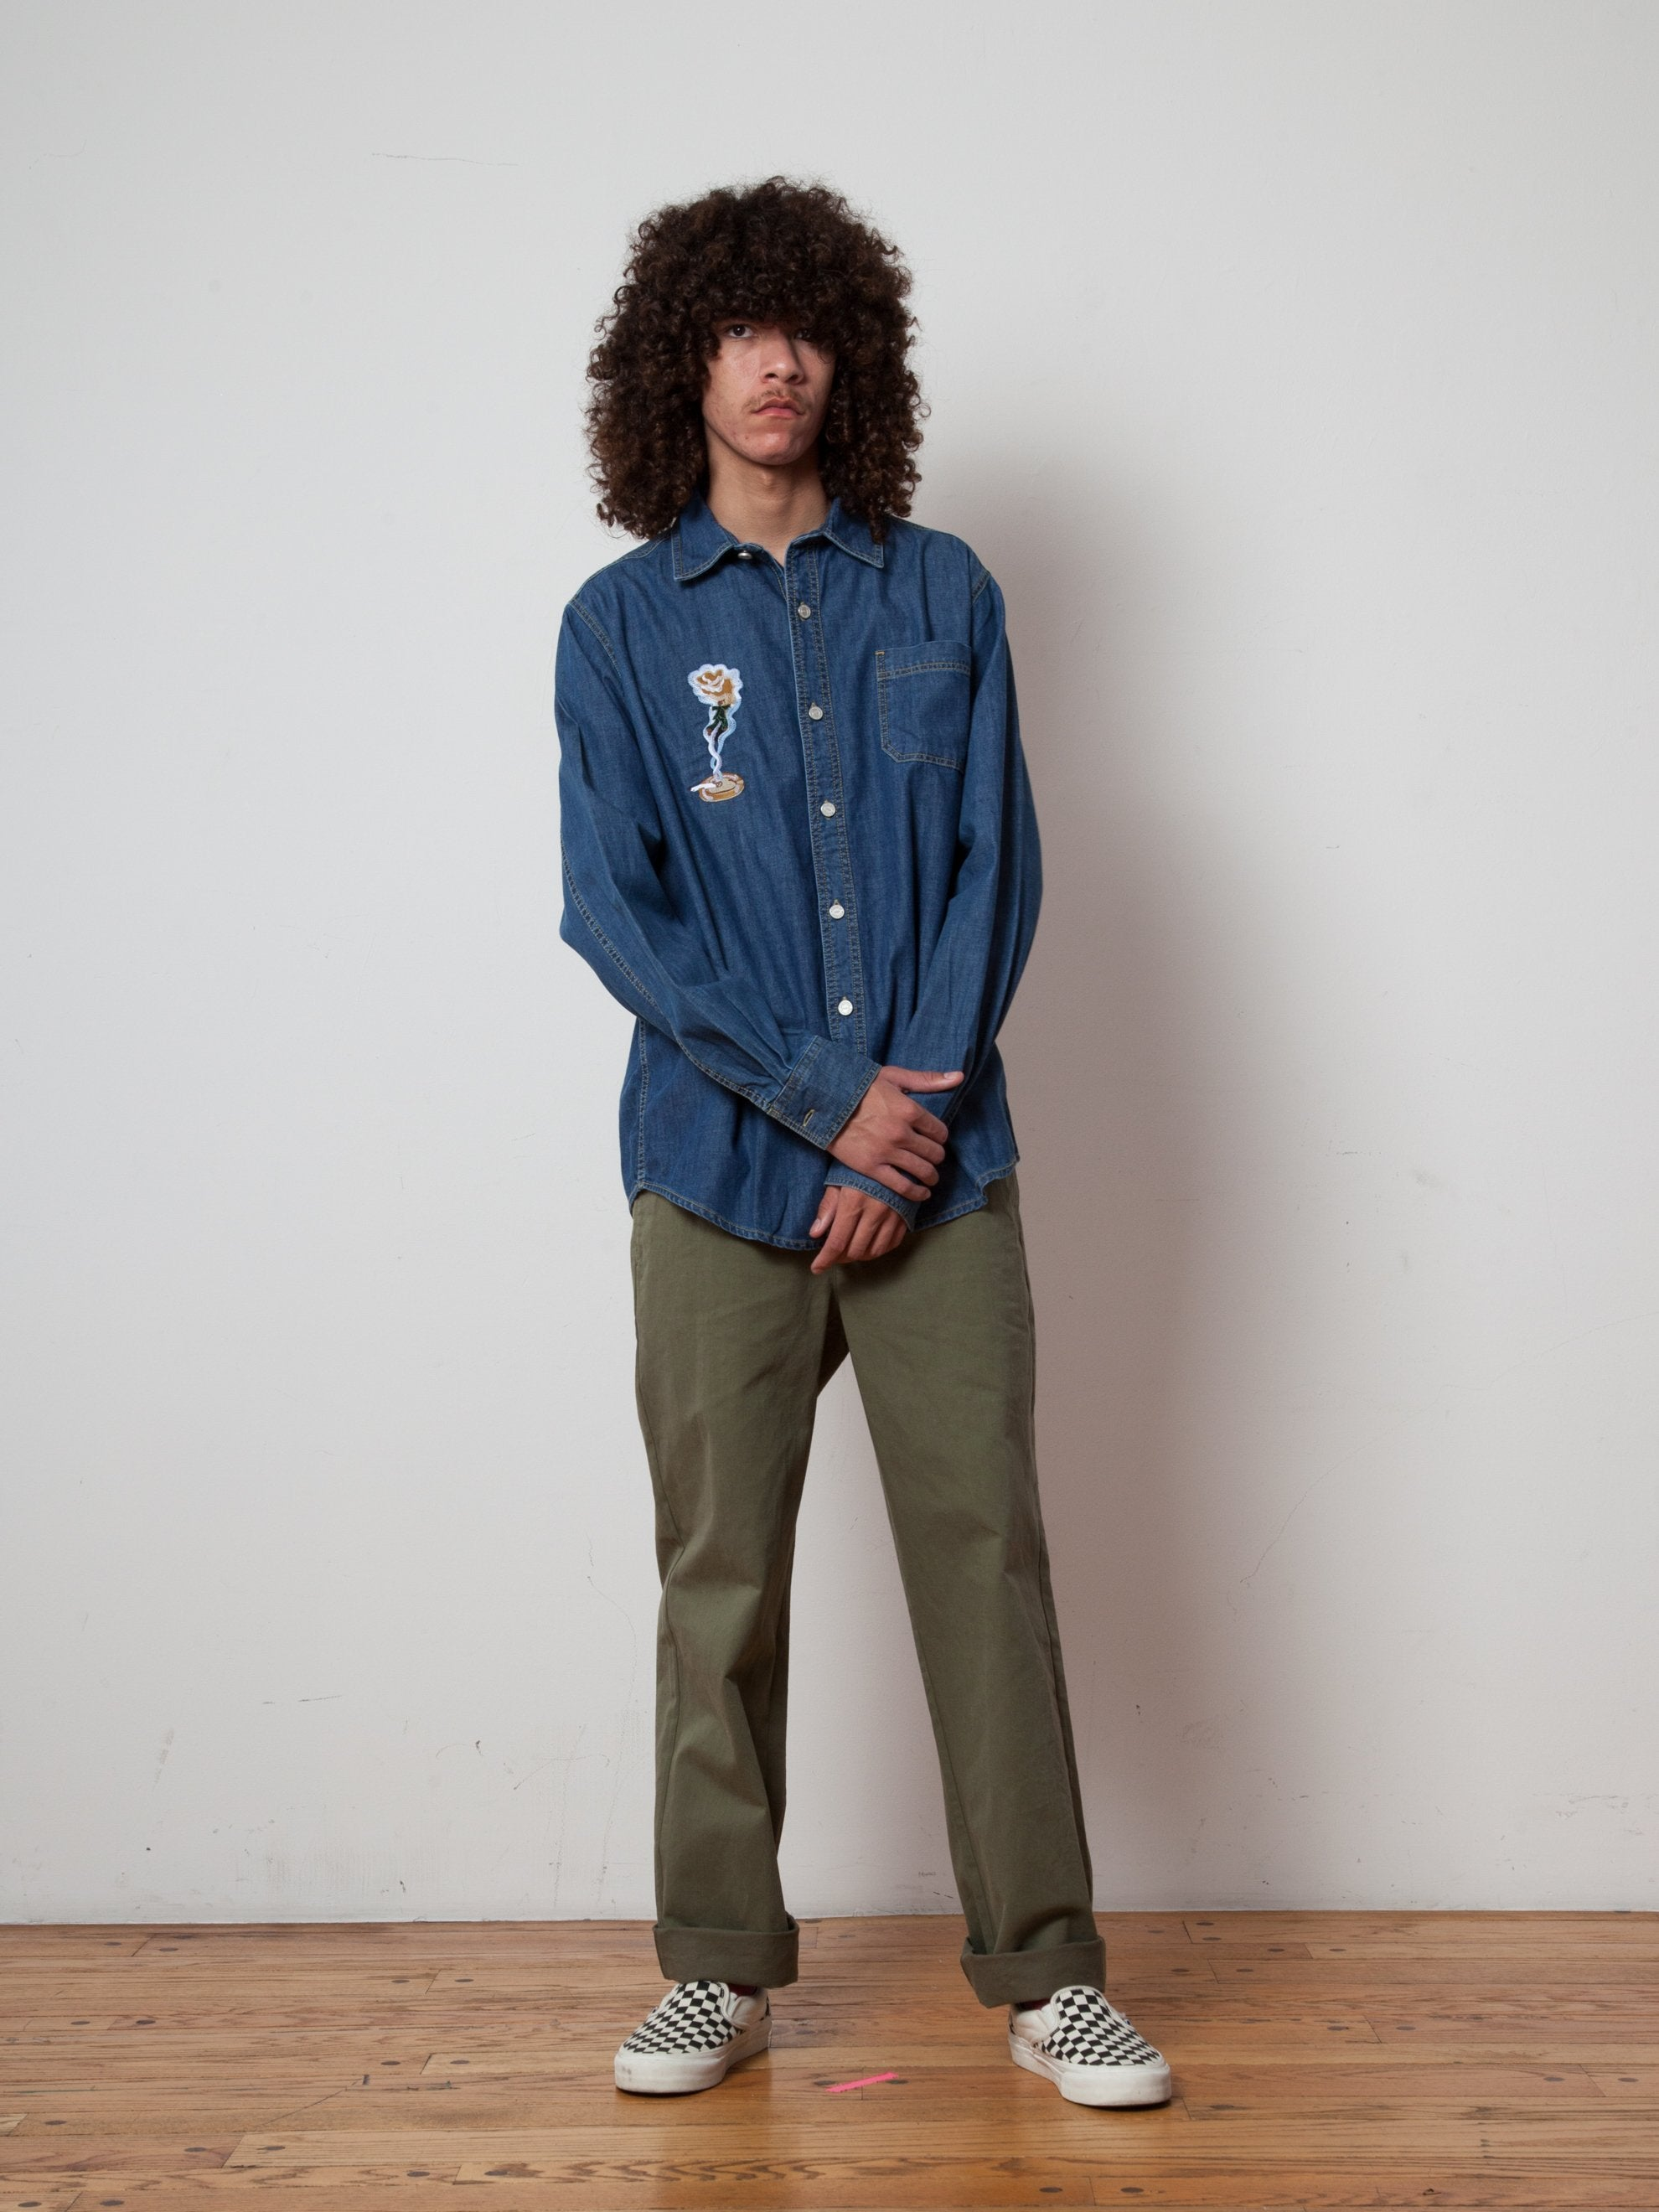 XL Smoker's Collection Jean Shirt 5